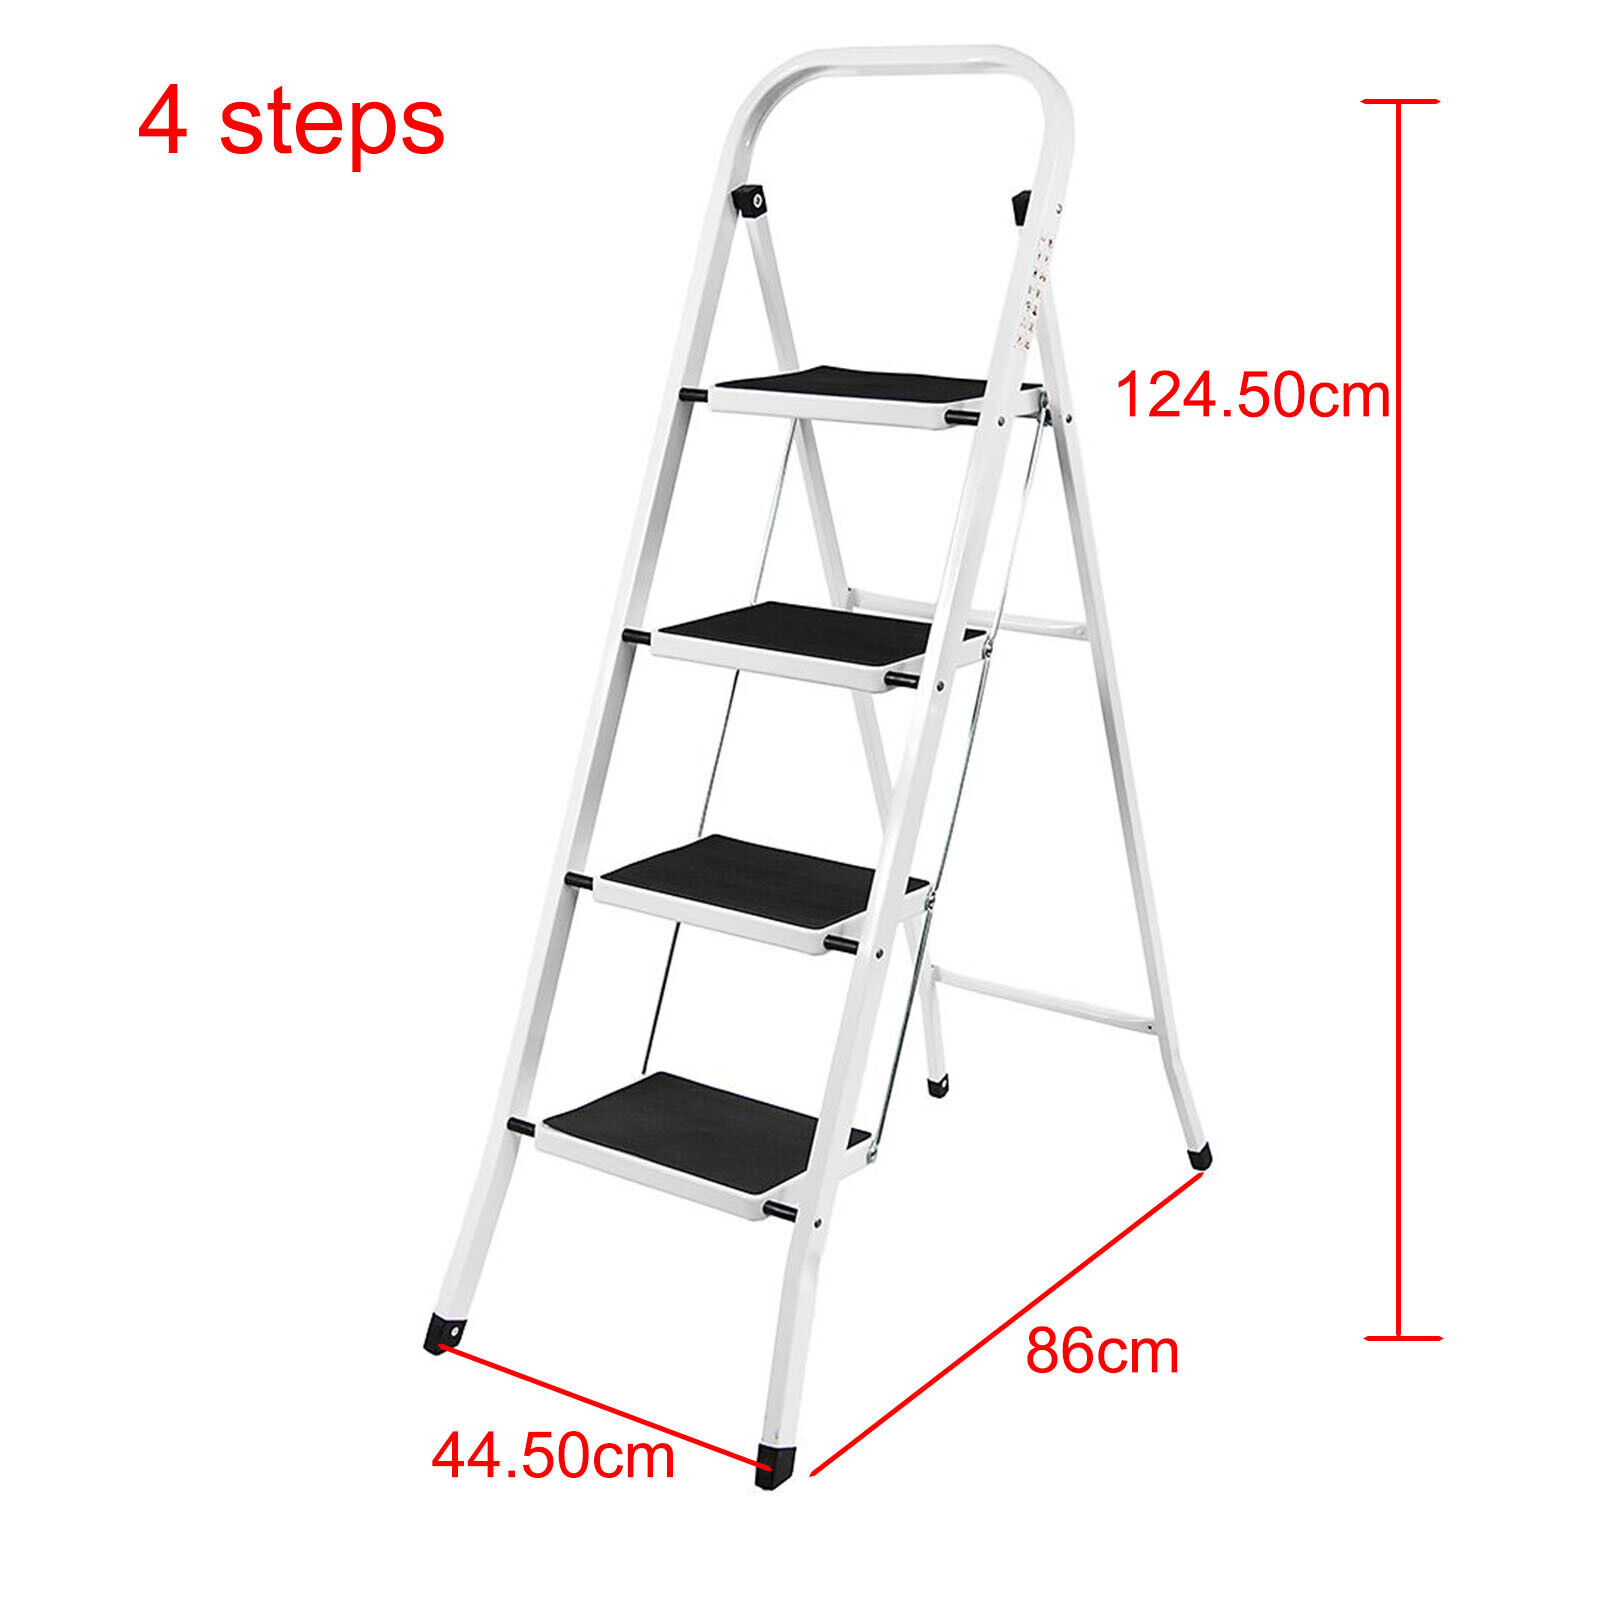 2 3 4 Heavy Duty Foldable Step Ladder Strong Folding Metal